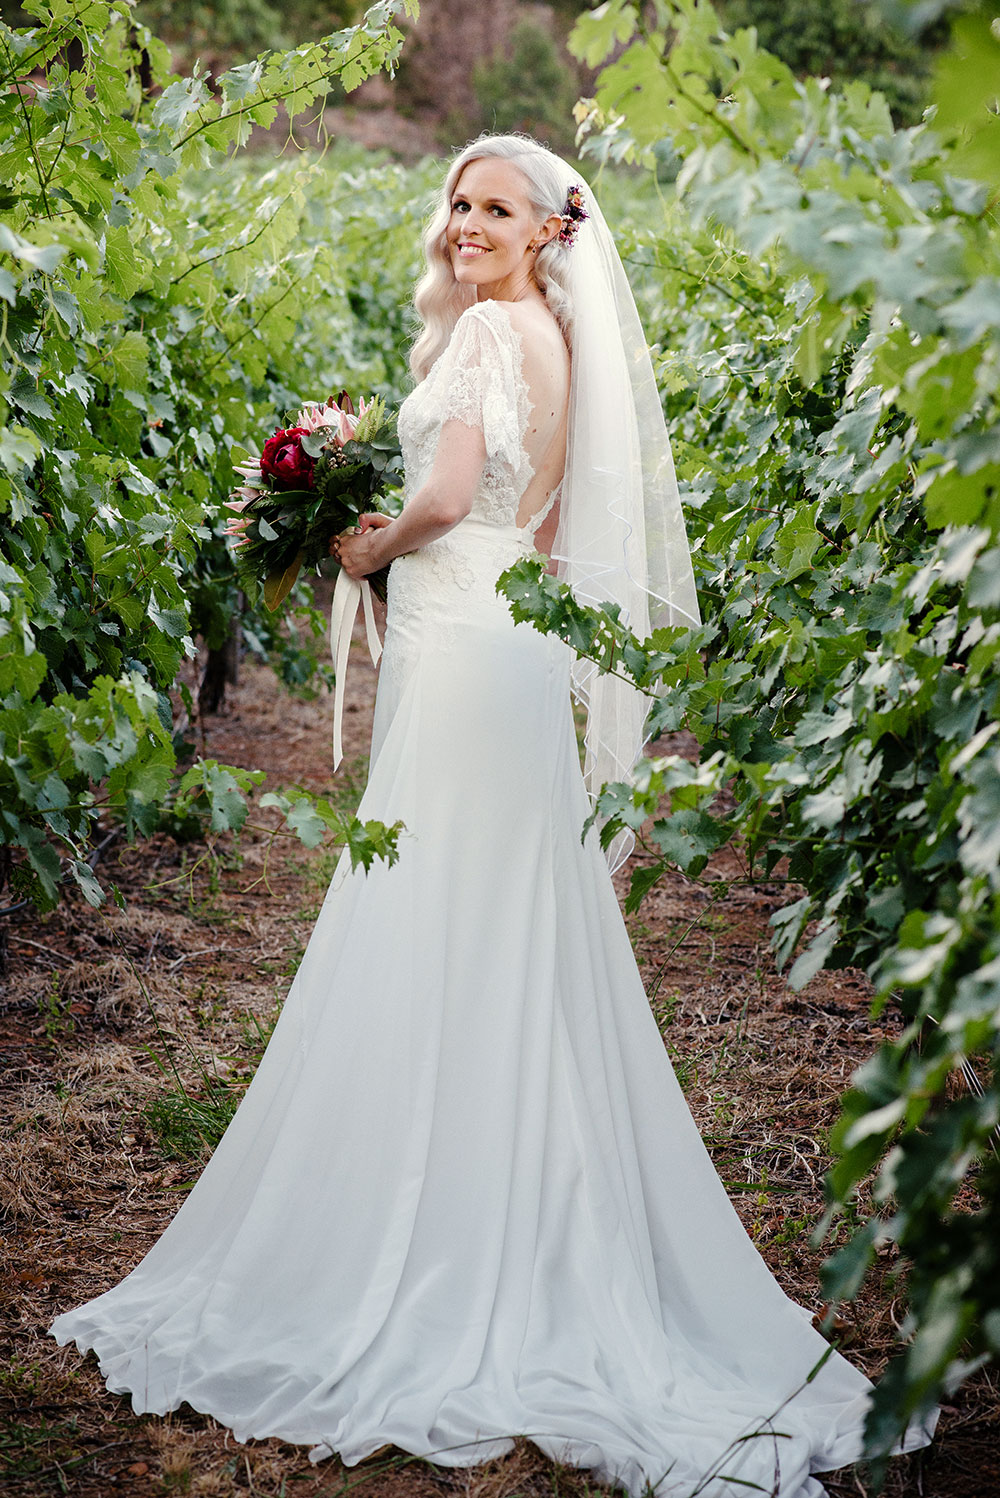 Cupids-Bridal-wedding-dress-bek.jpg